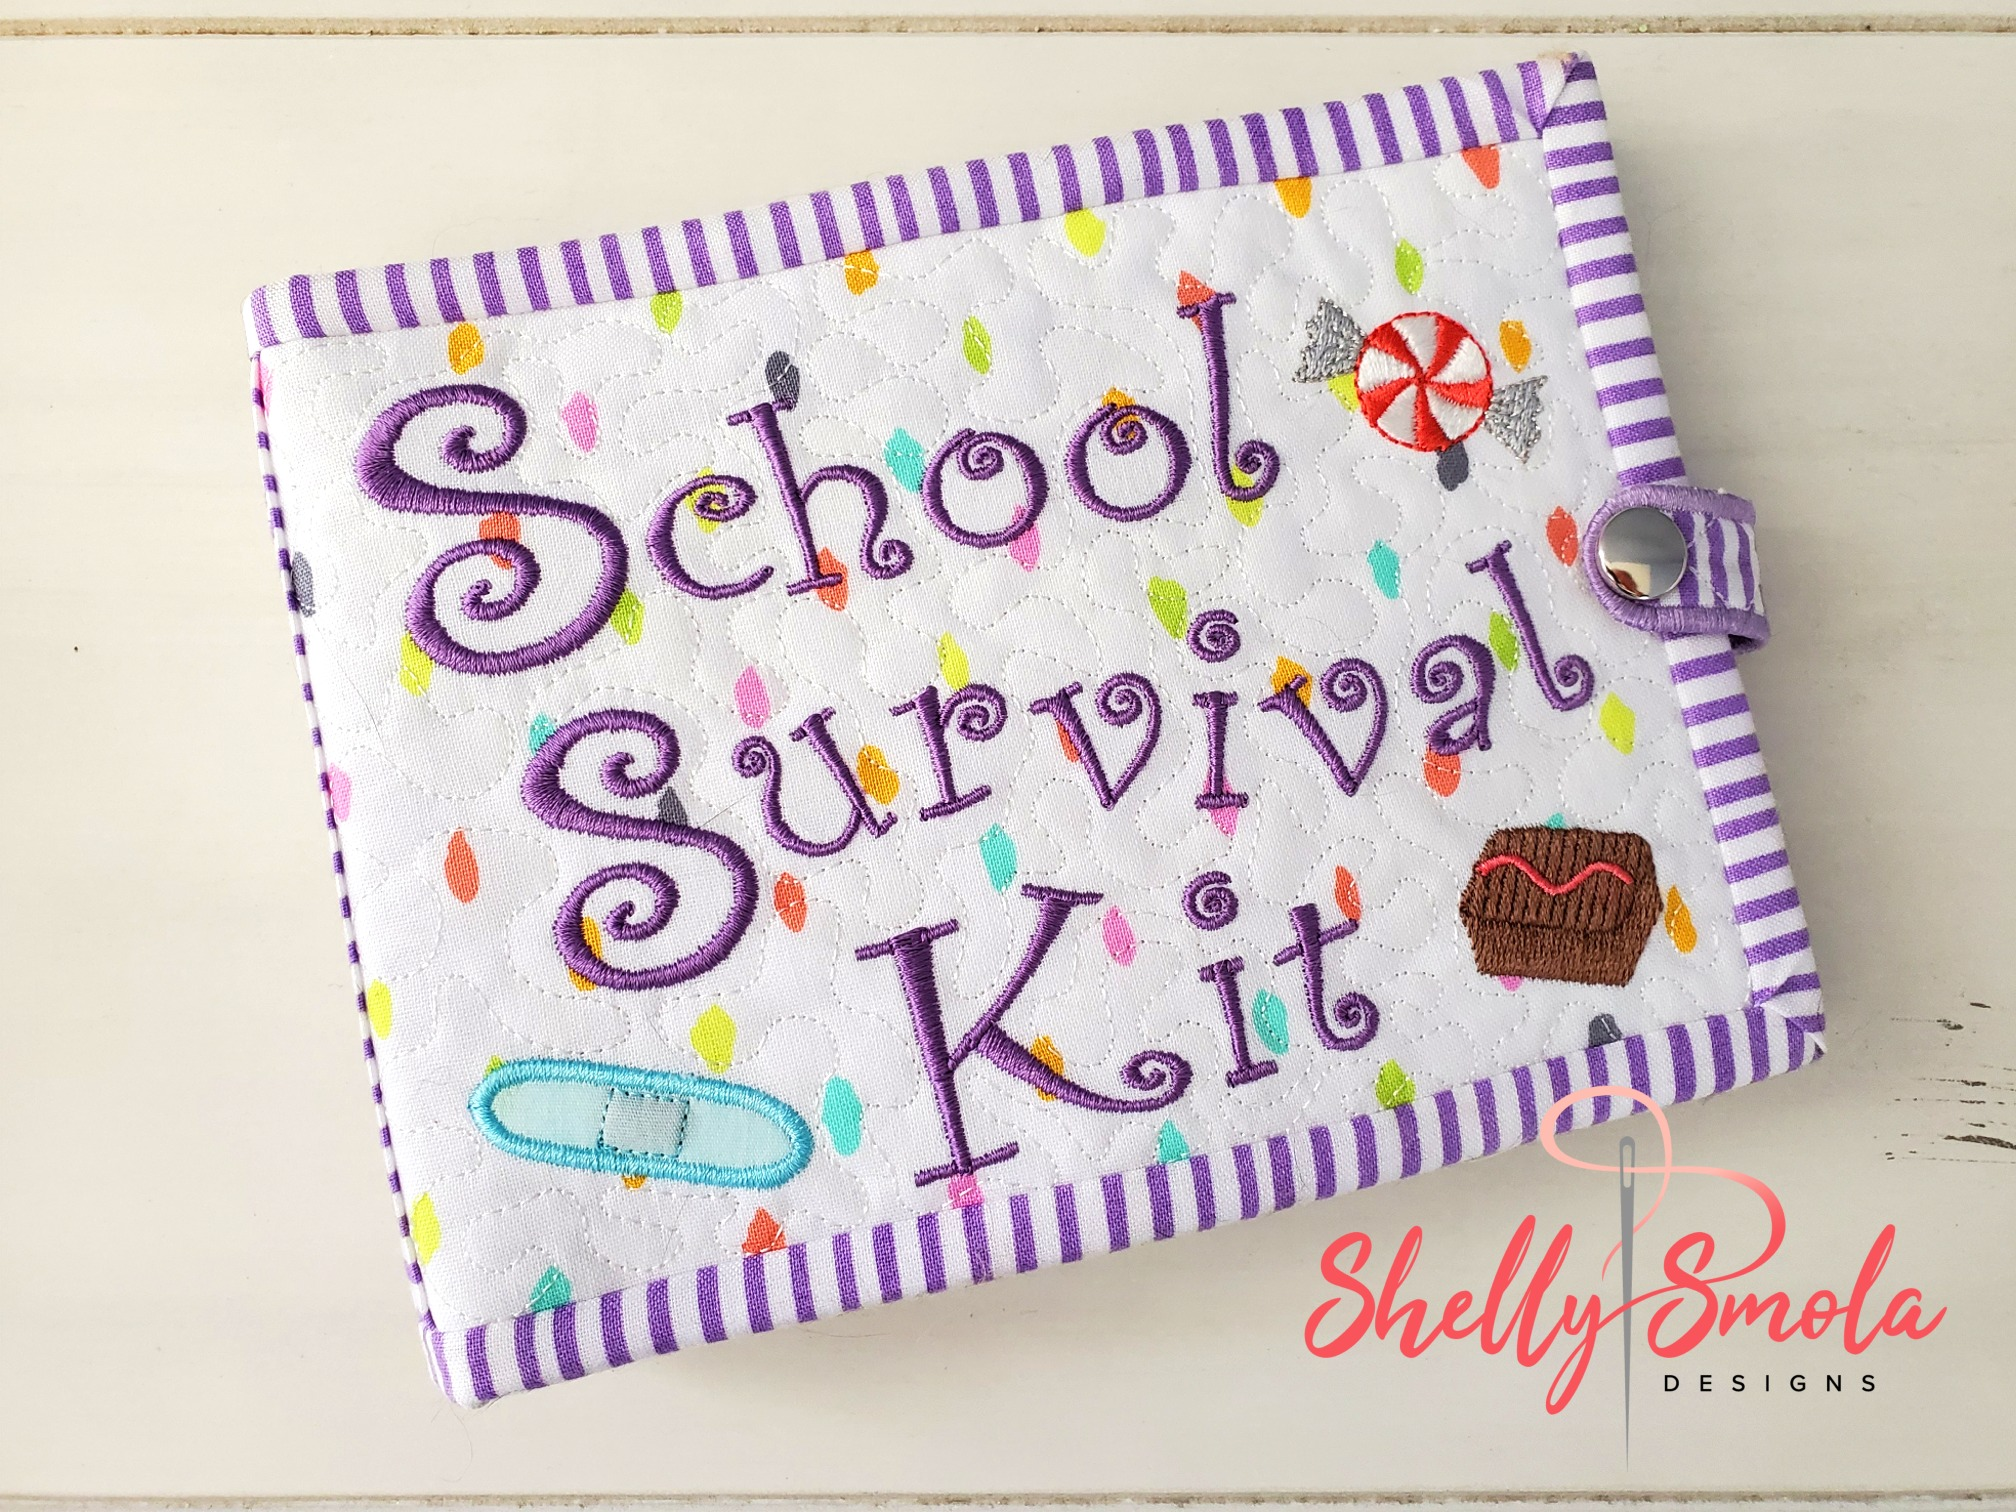 School Survival Kit by Shelly Smola Designs